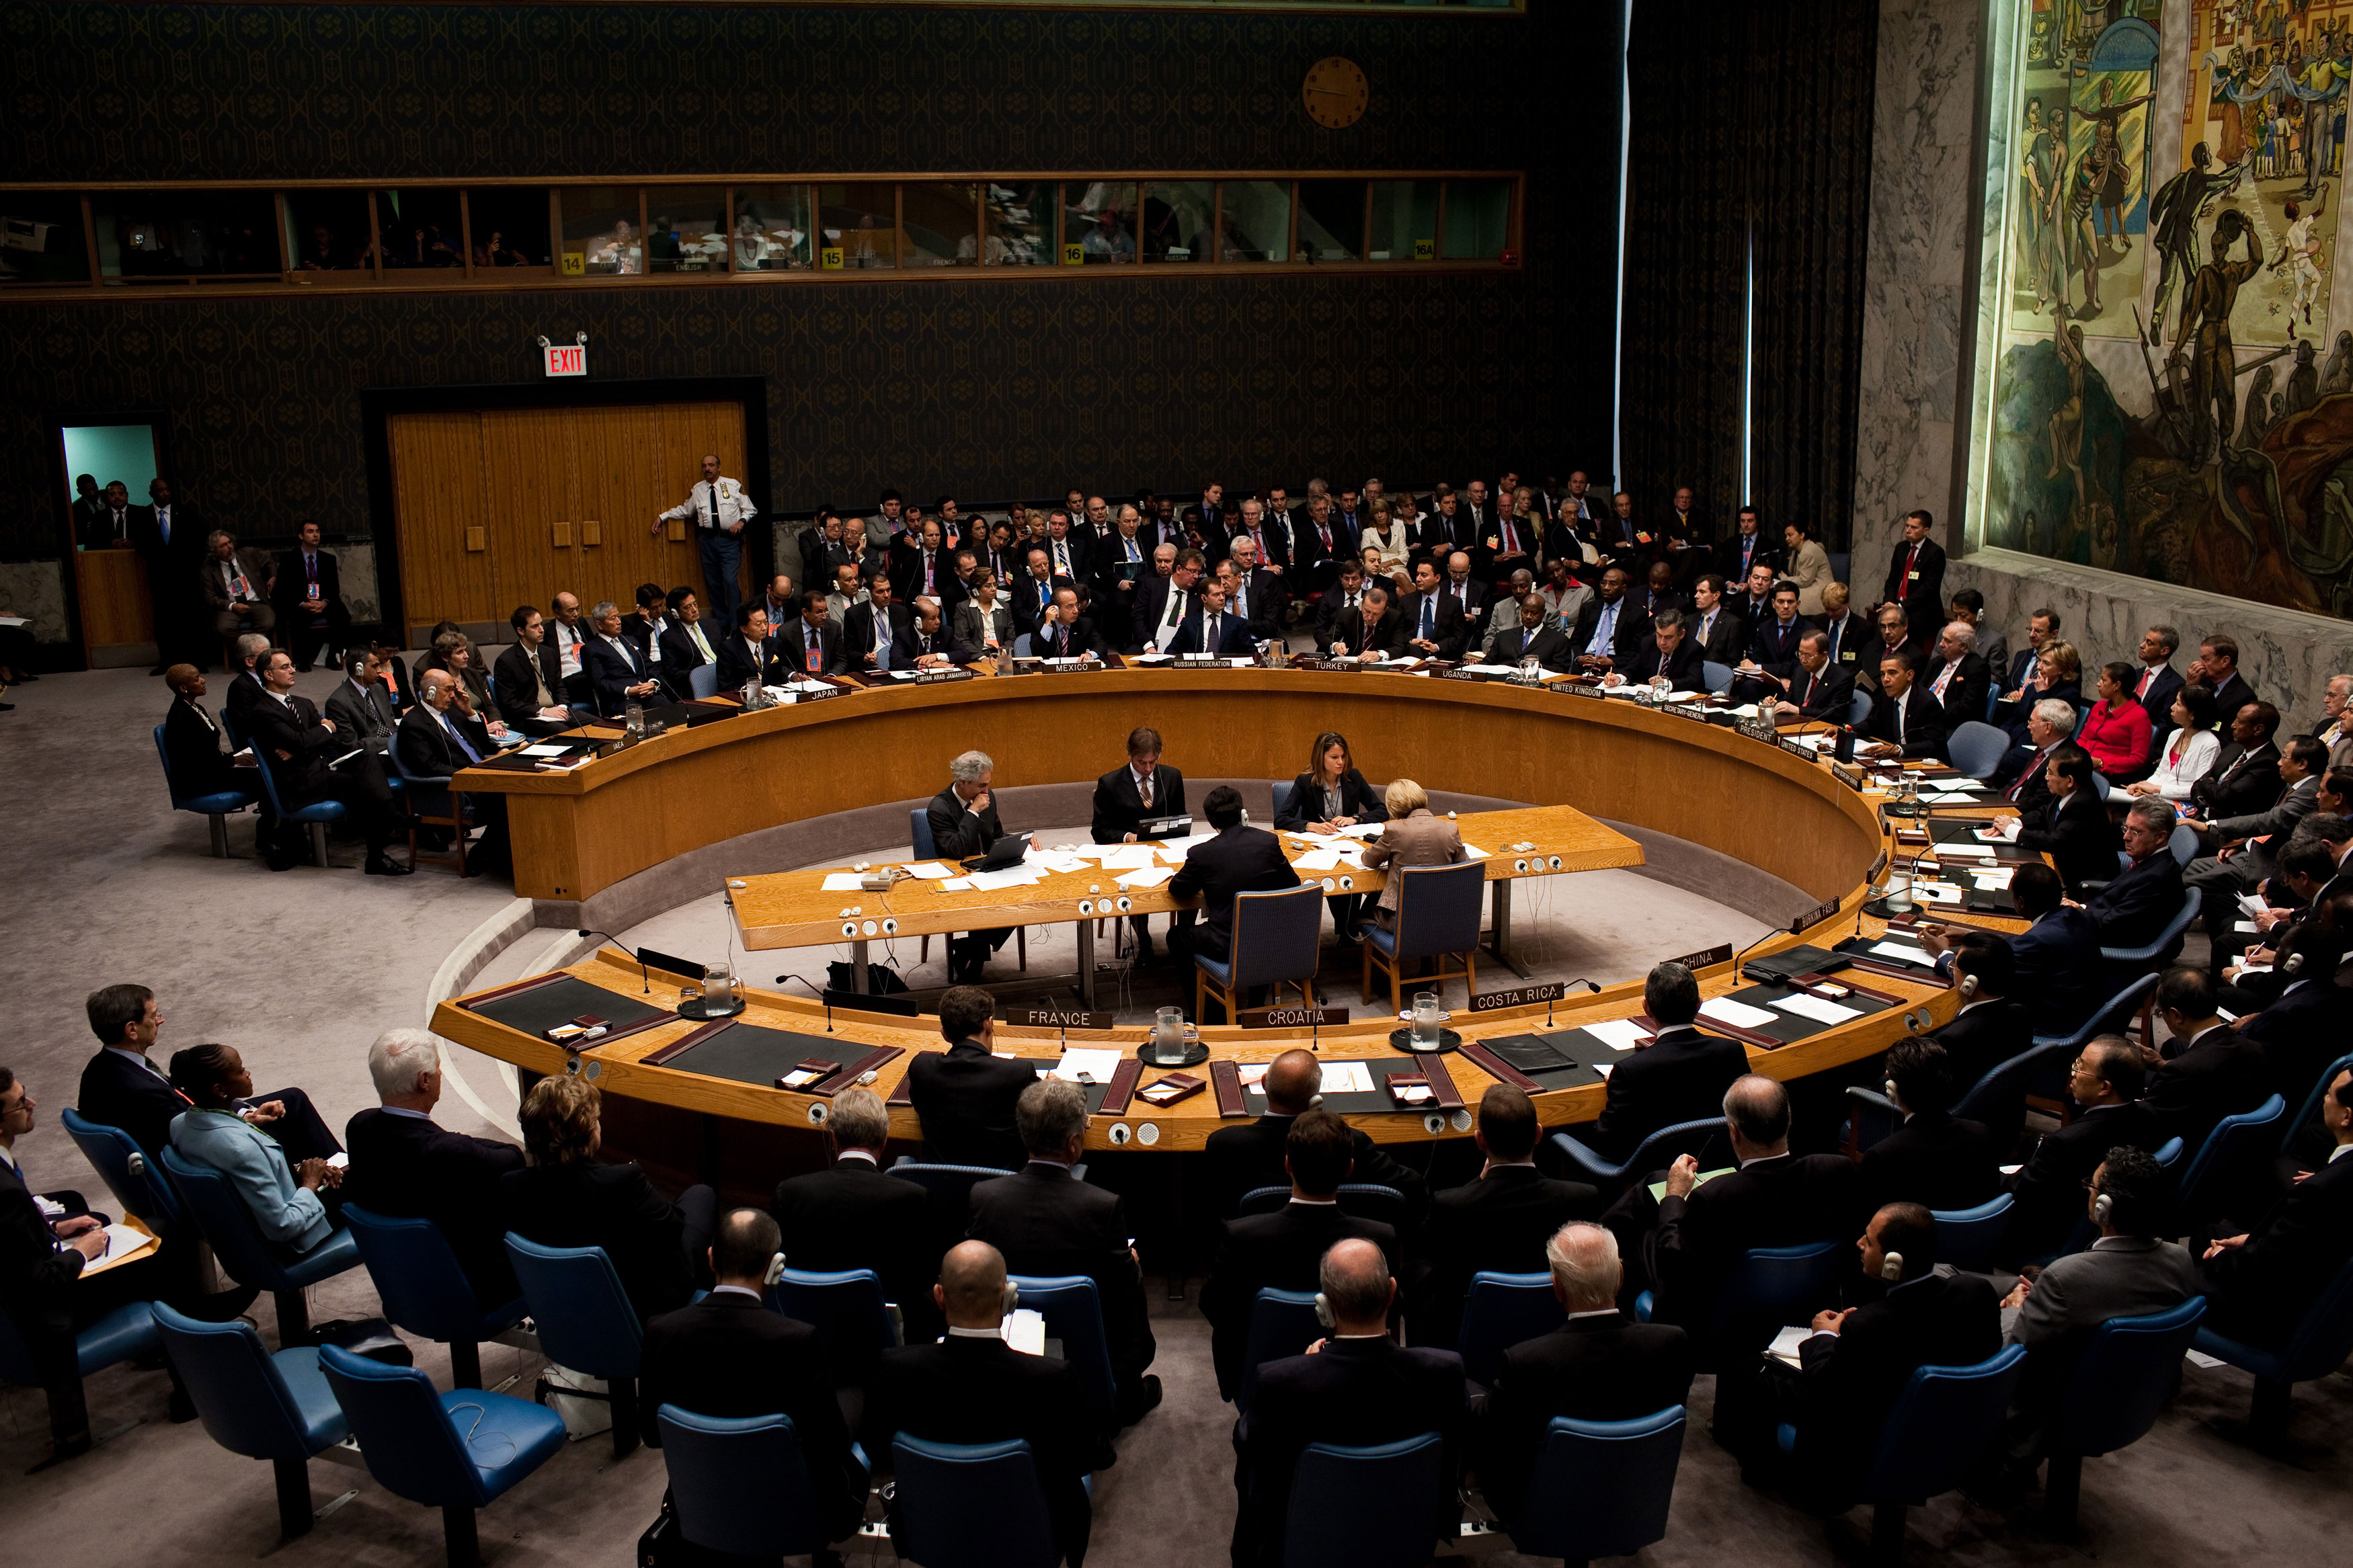 List of members of the United Nations Security Council